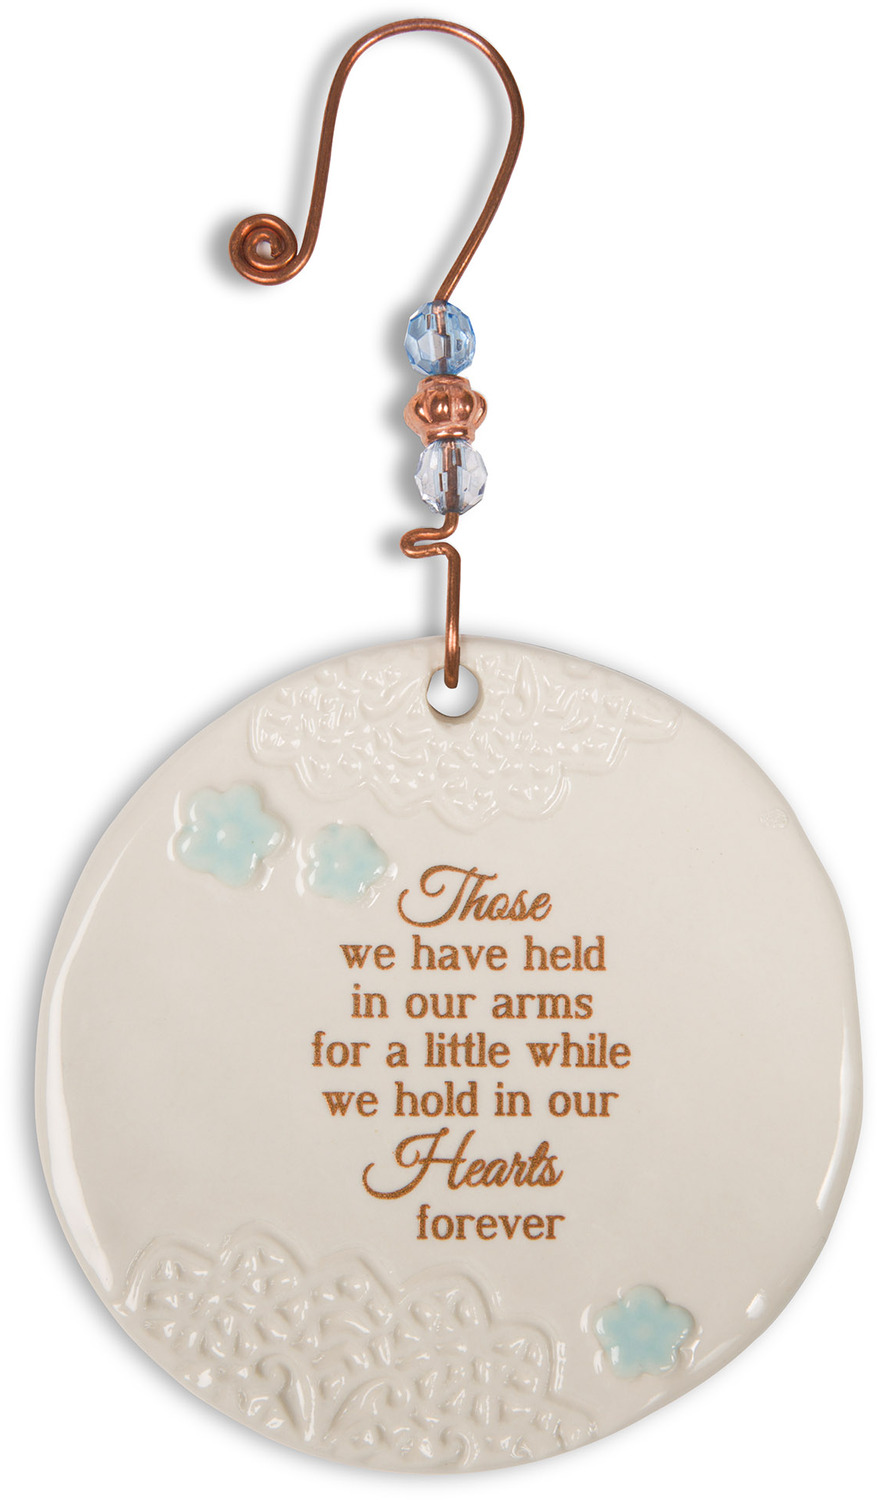 In our hearts forever 3 5 ceramic ornament light your - Ornament tapete weiay ...